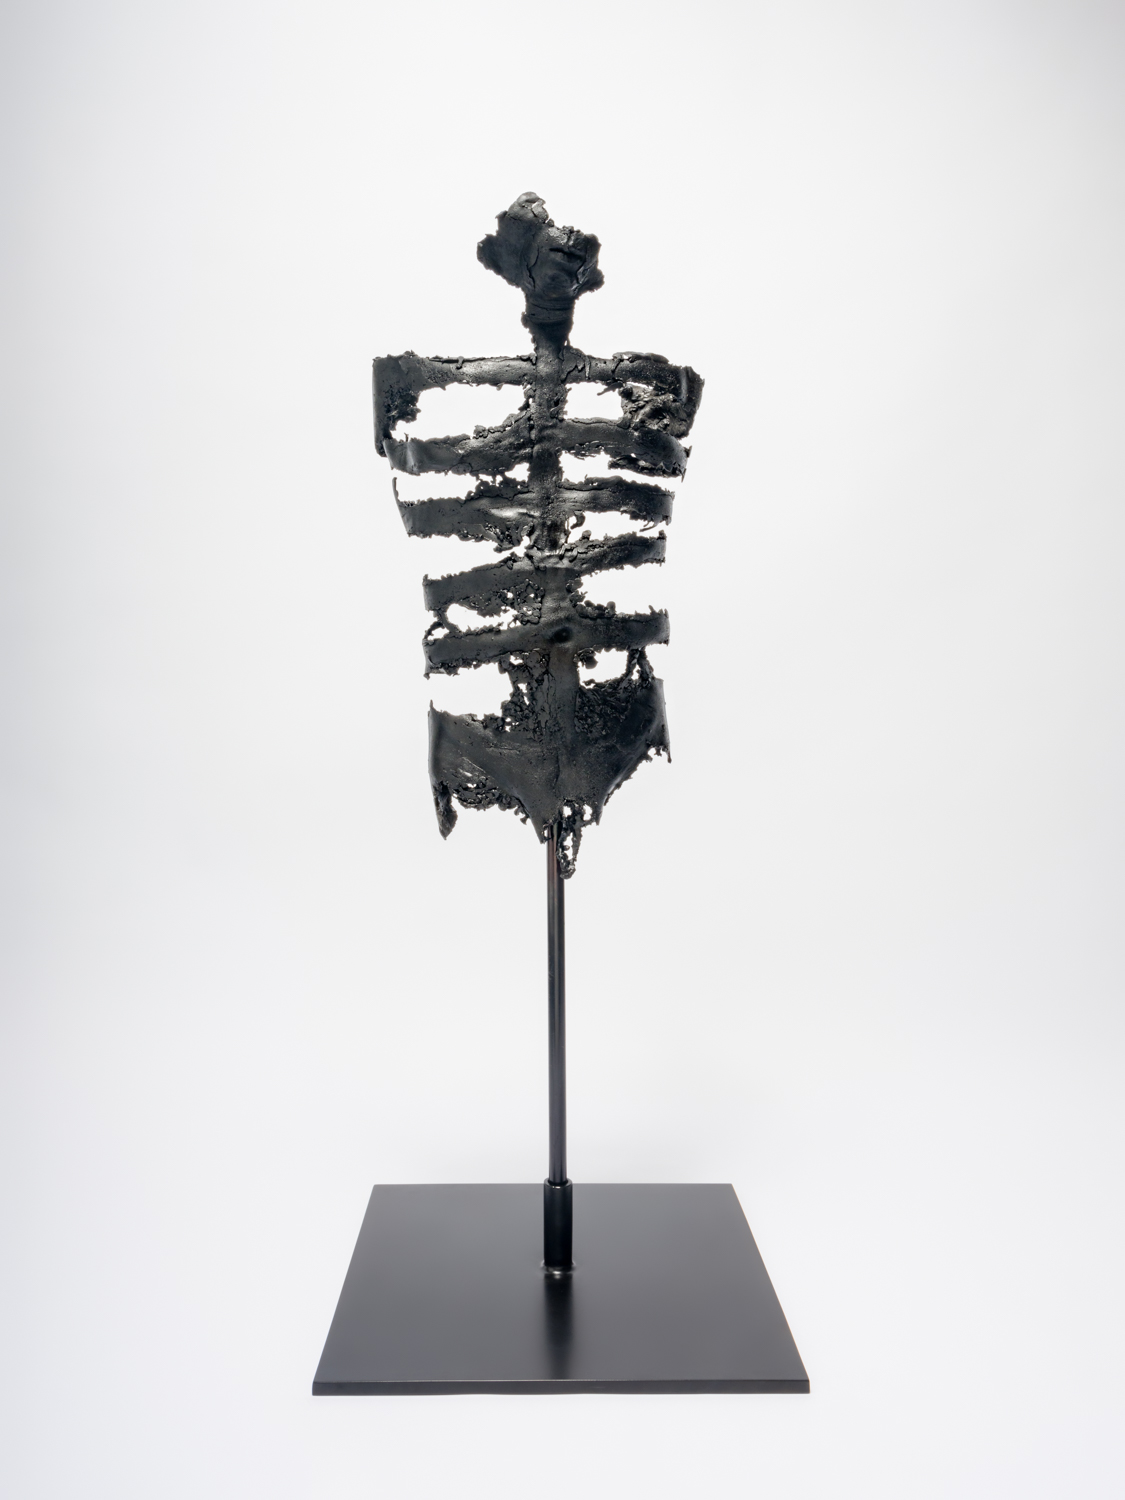 Naotaka Hiro  Lonesome Tree a  2018 Bronze, stainless steel rod, steel, black patina 52h x 20w x 12d in NaoH012